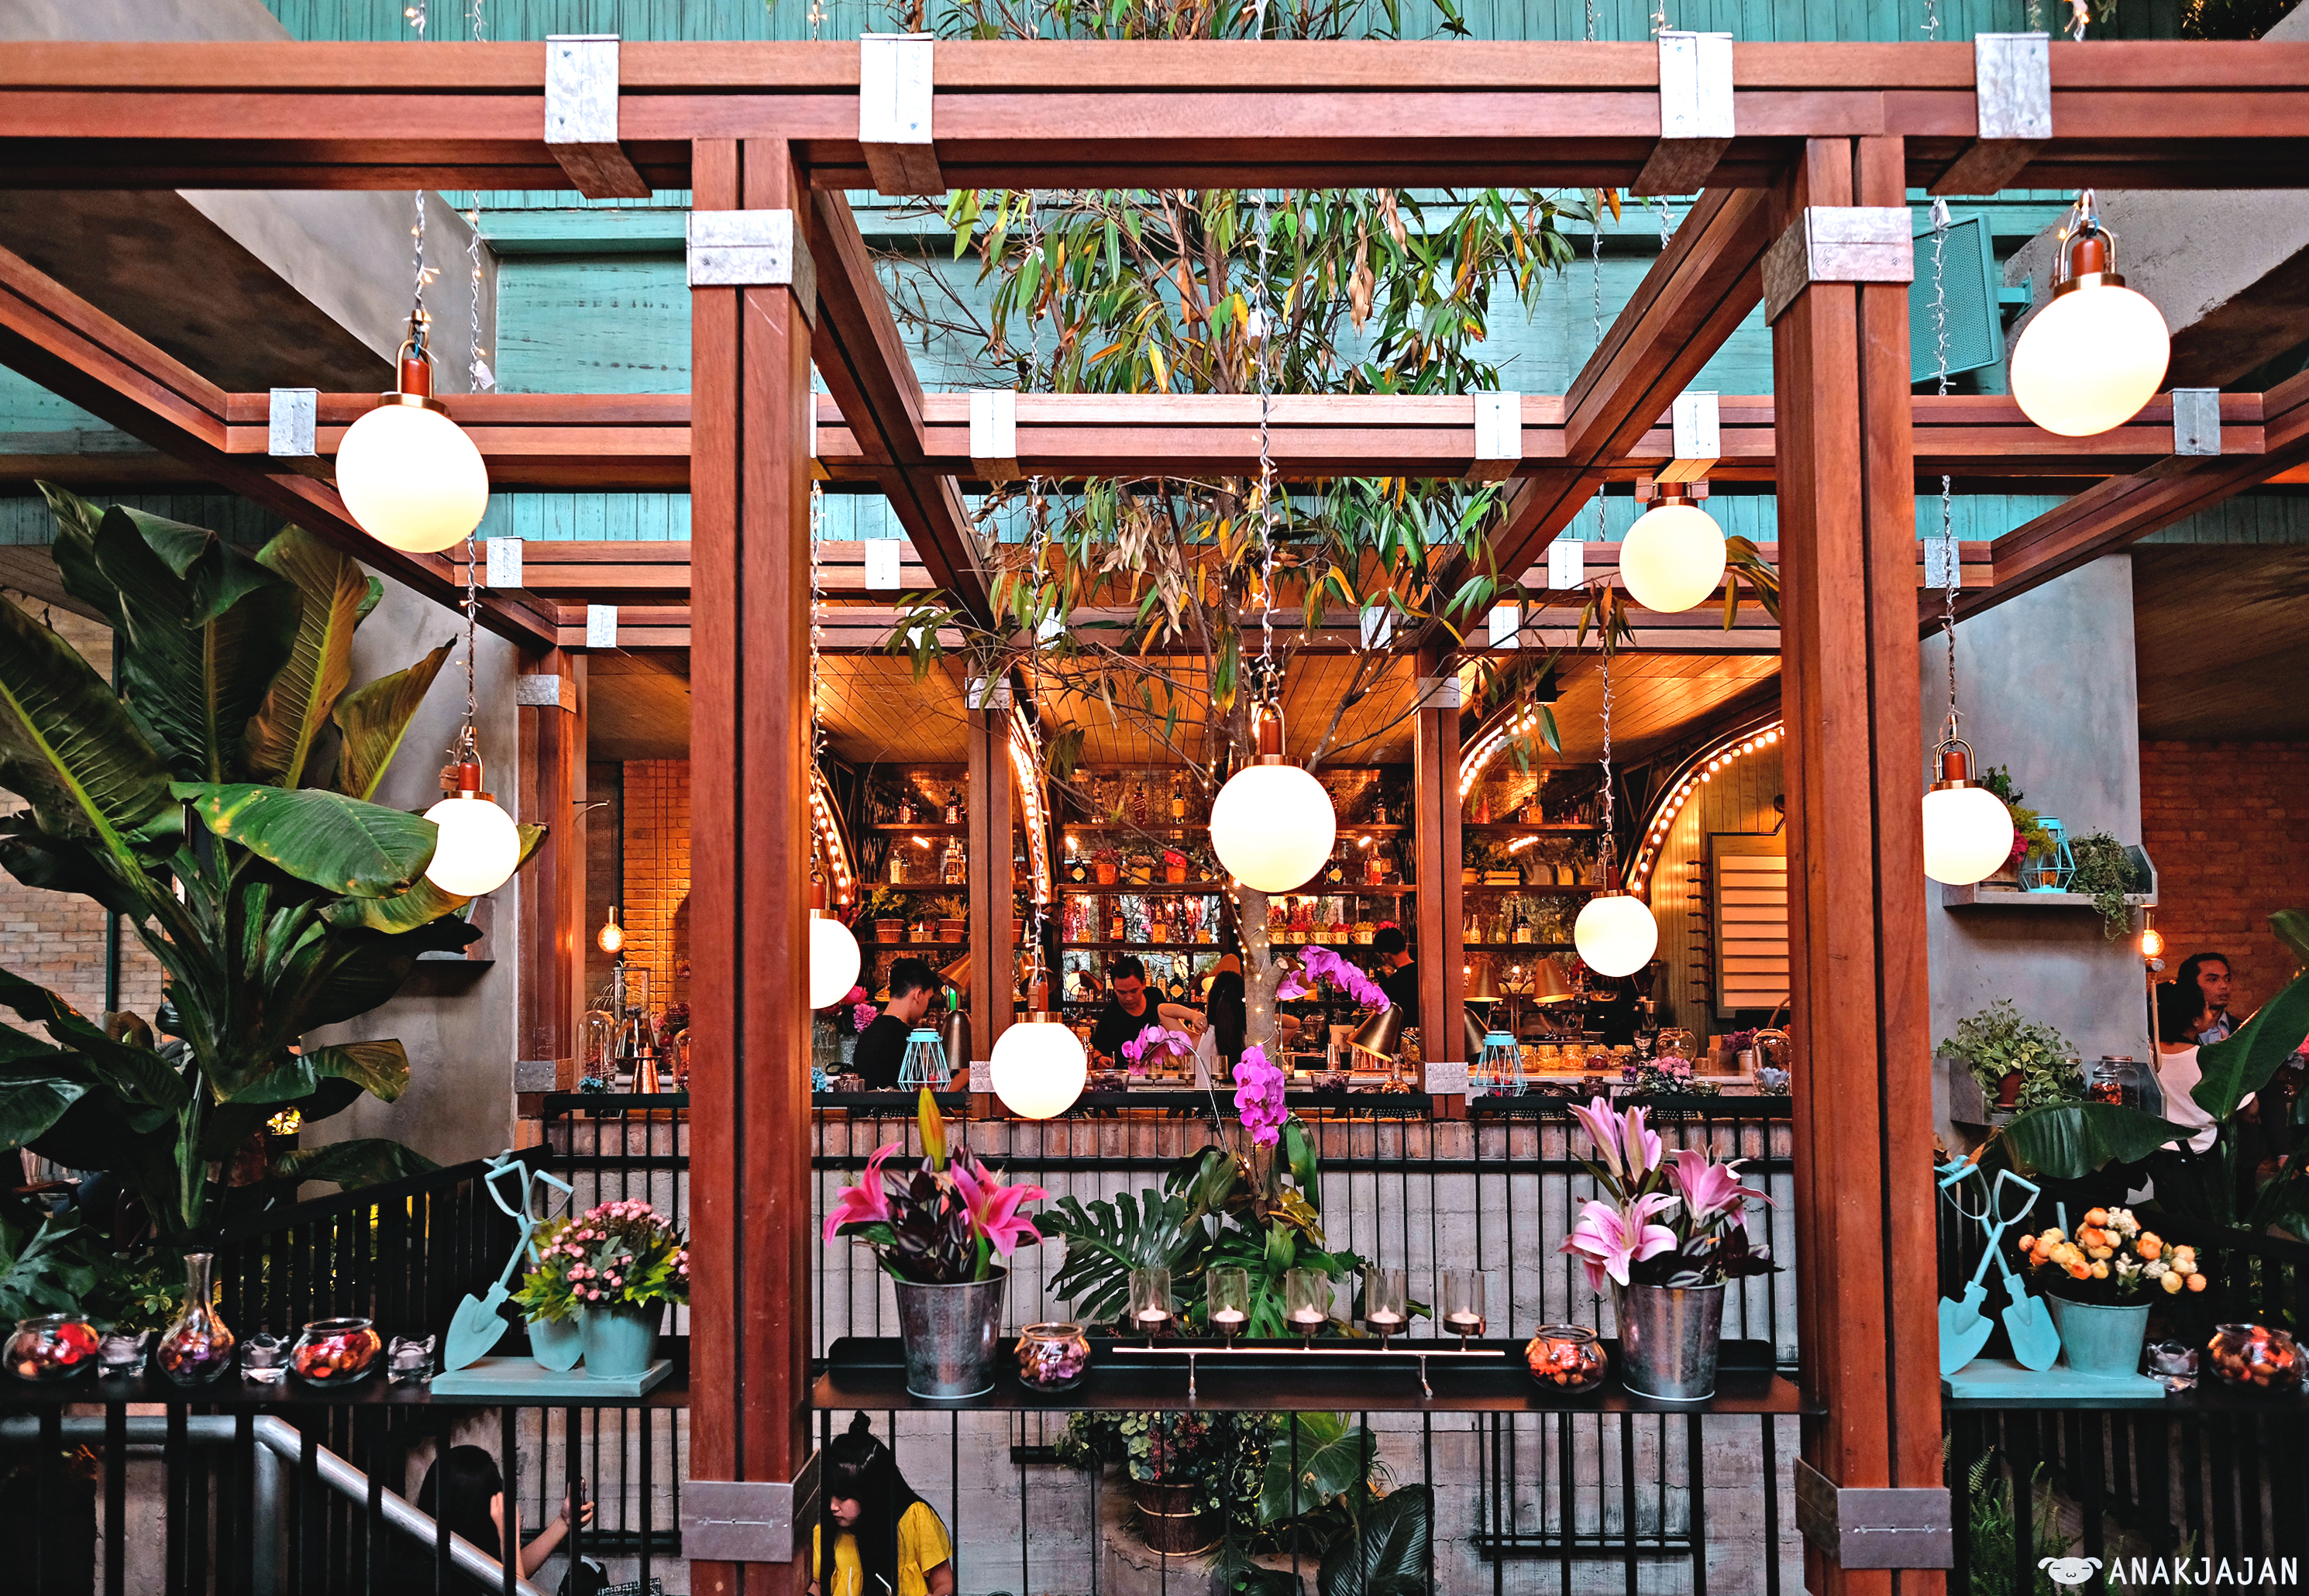 As The Name Suggests, You Can Expect To Find Lush Garden Ornaments In This  Restaurant. Compared To The Flowery Onni House Cafe We Recently Visited, ...